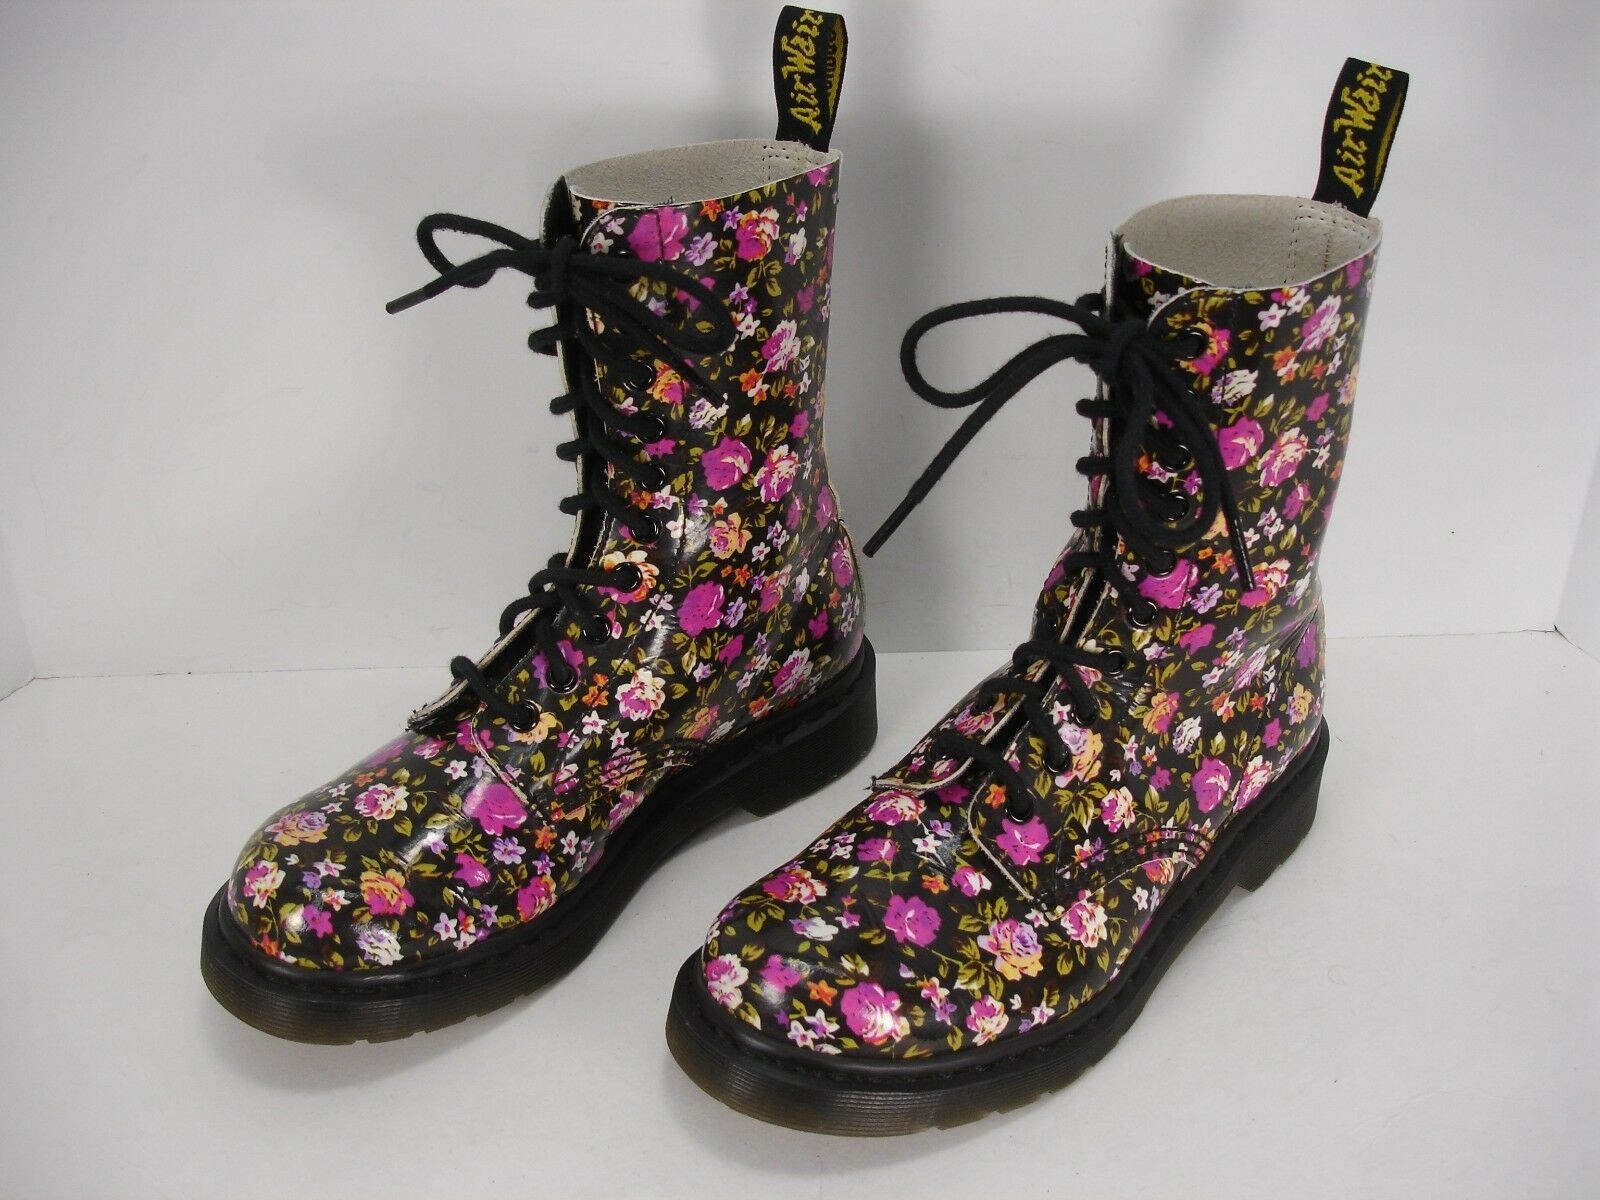 DR MARTENS SIMONE PATENT LEATHER FLORAL PRINT LACE UP ANKLE BOOTS WOMEN'S 7